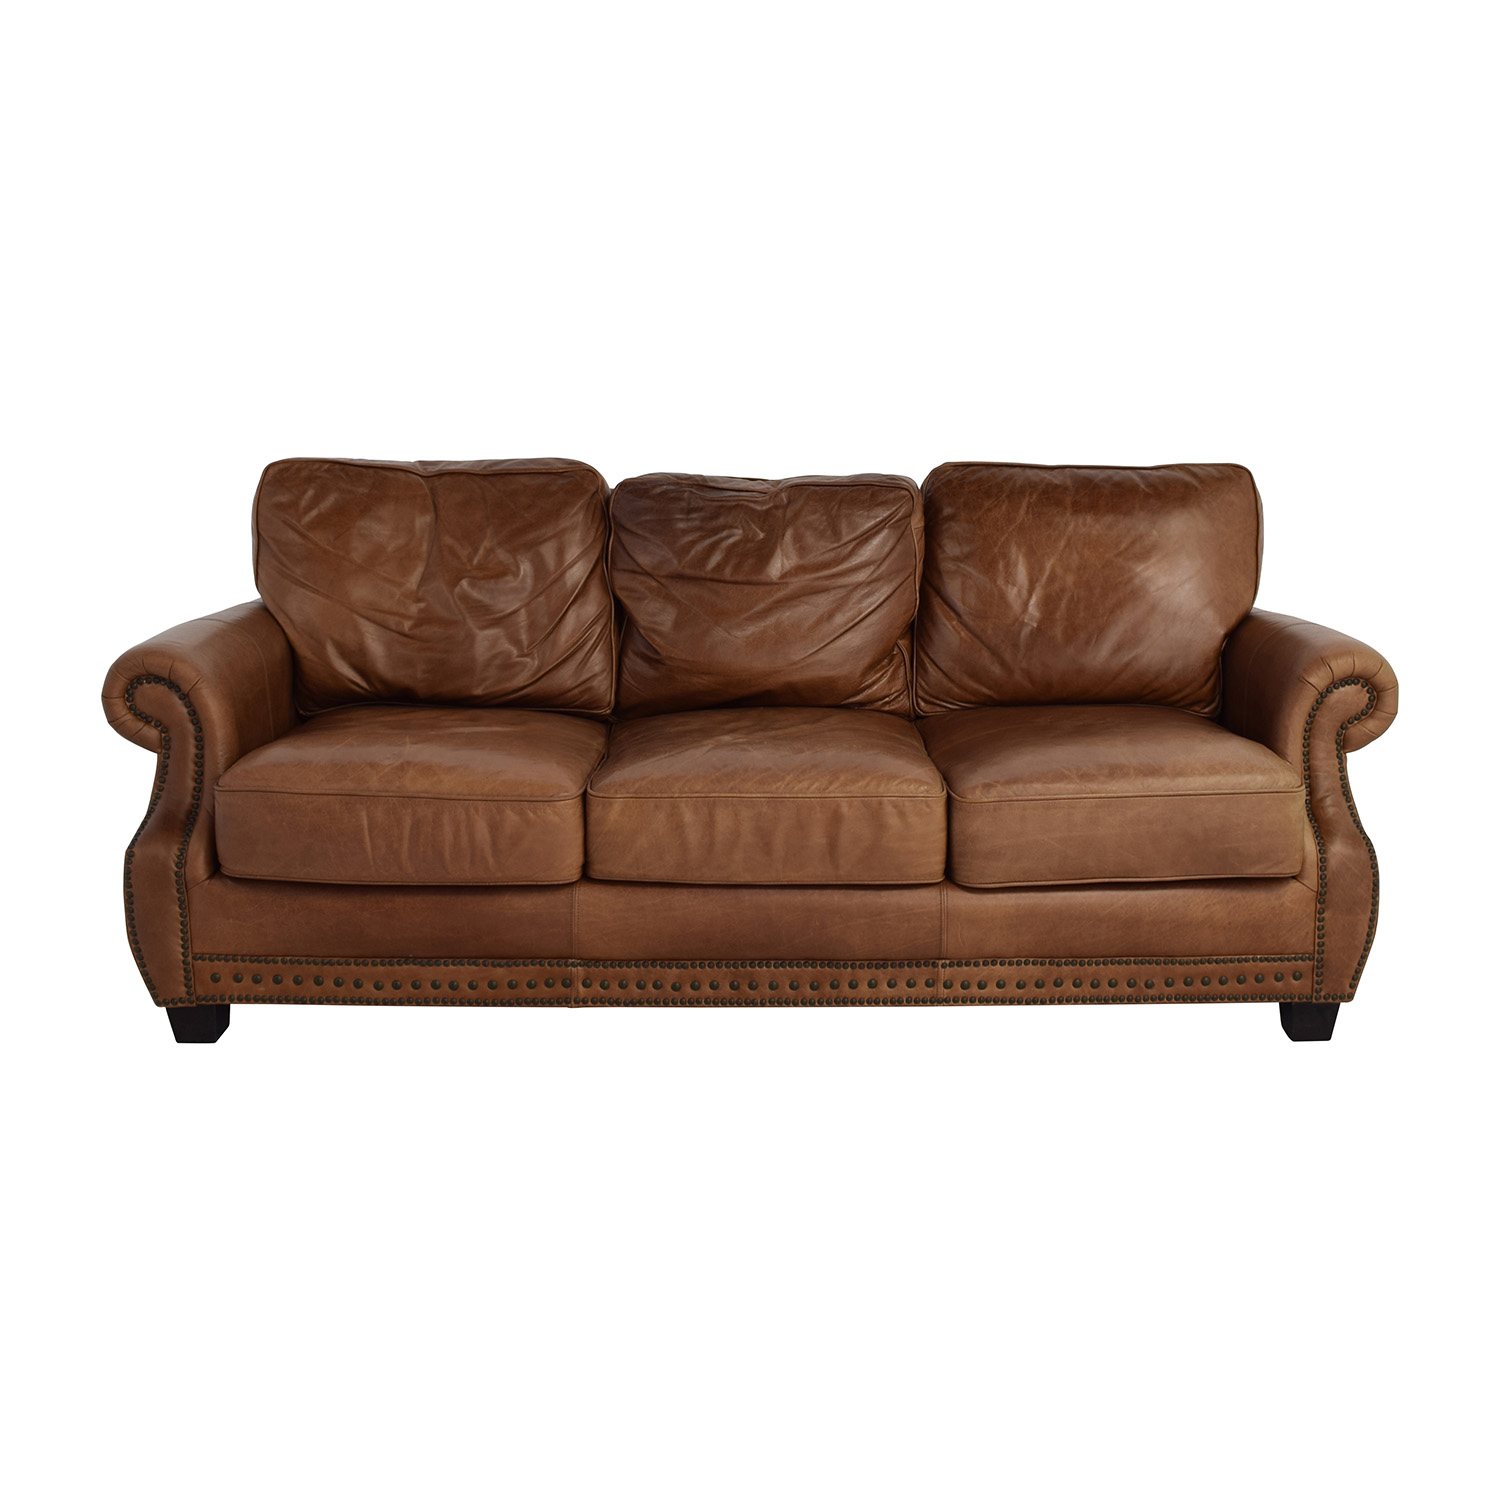 46% OFF CB2 CB2 Avec Apartment Sofa Sofas